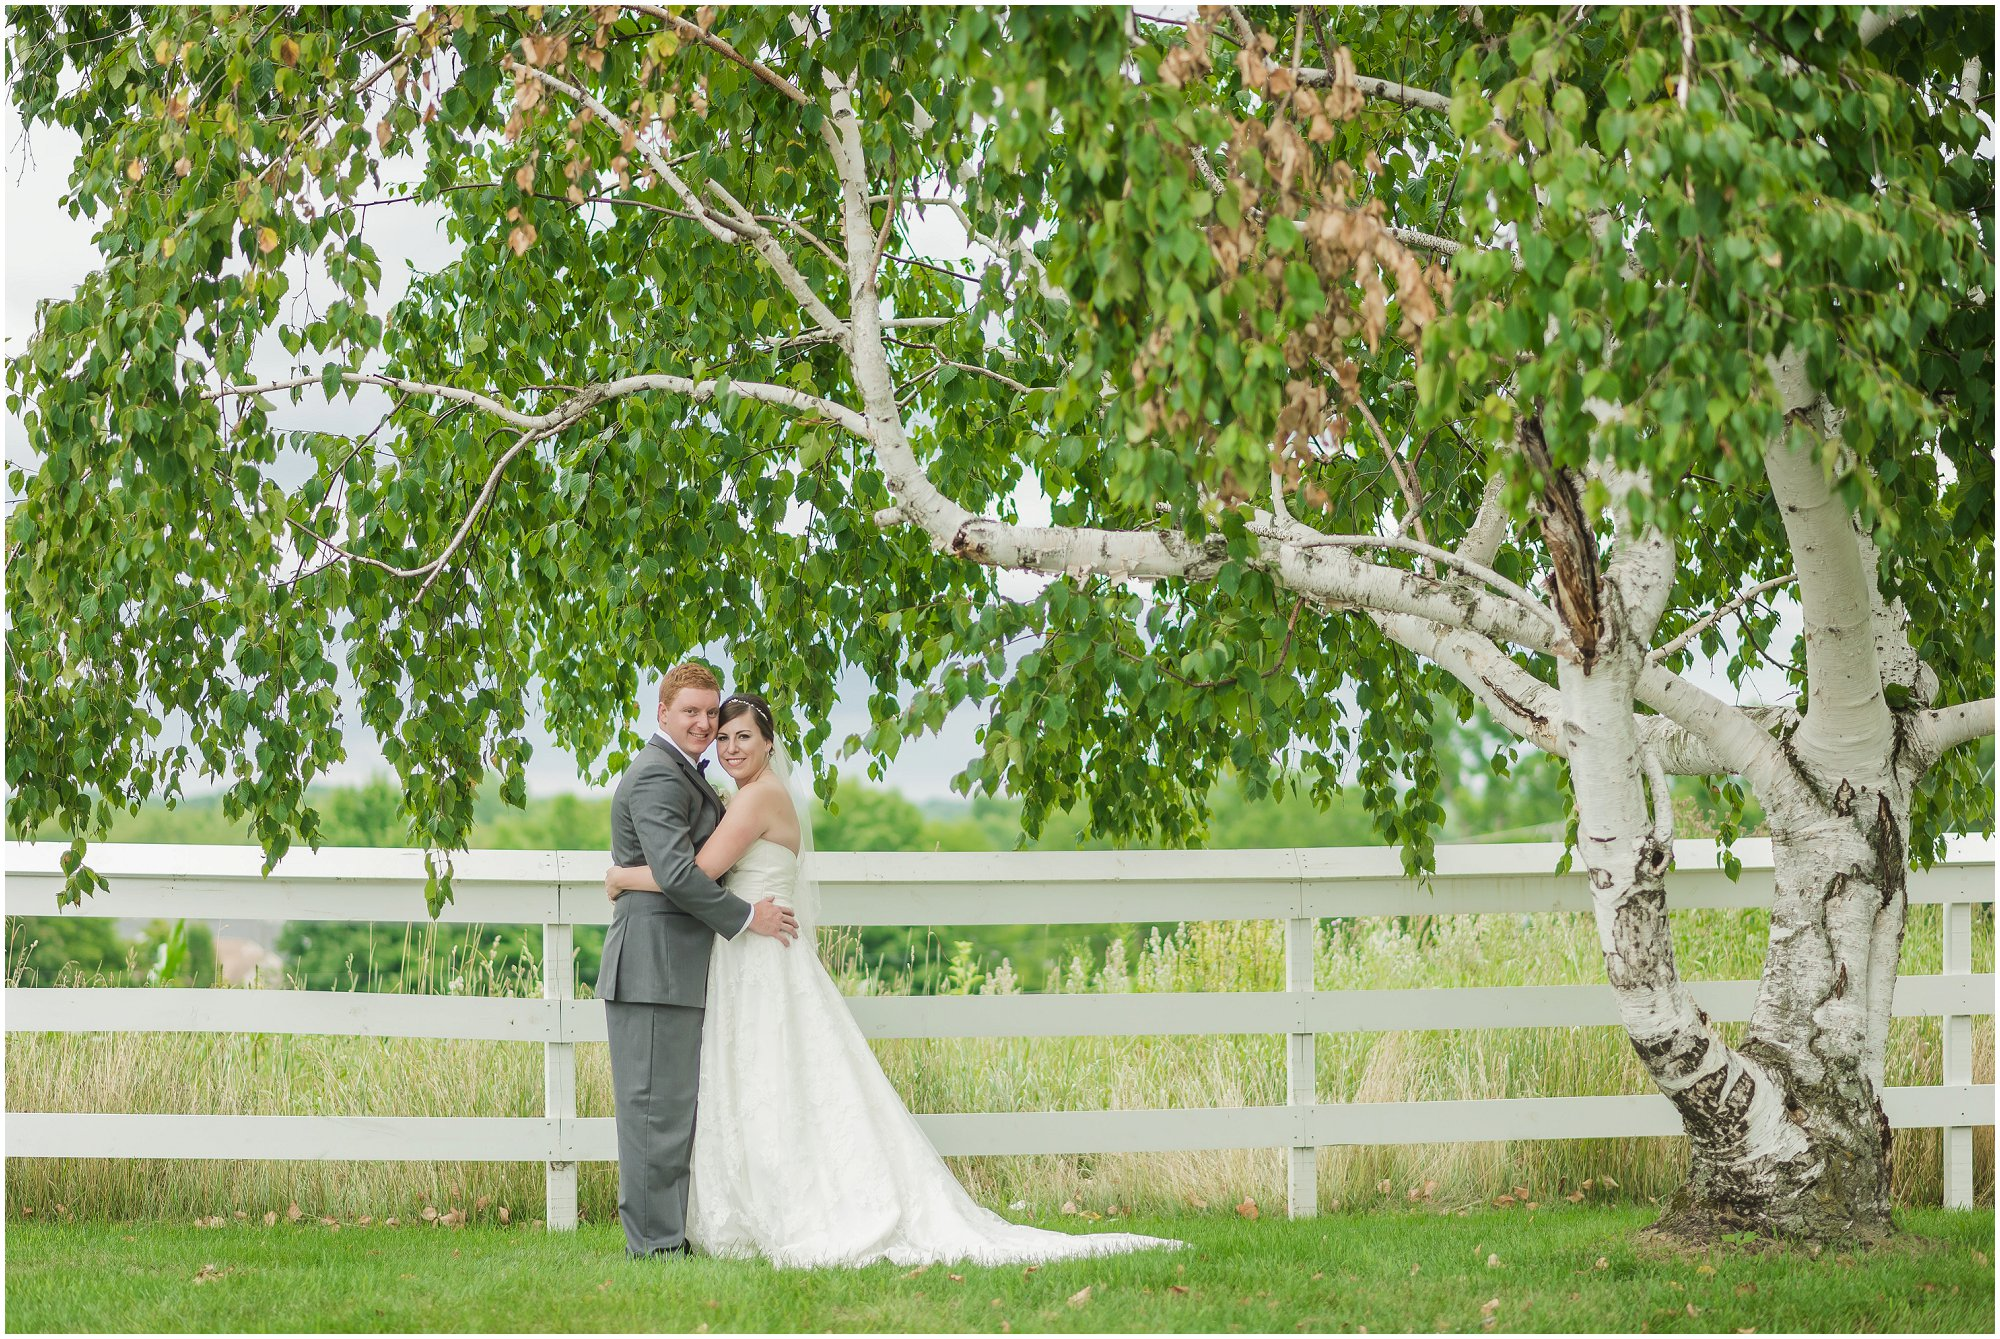 cornman-farms-wedding-michigan-barn-wedding_0958.jpg